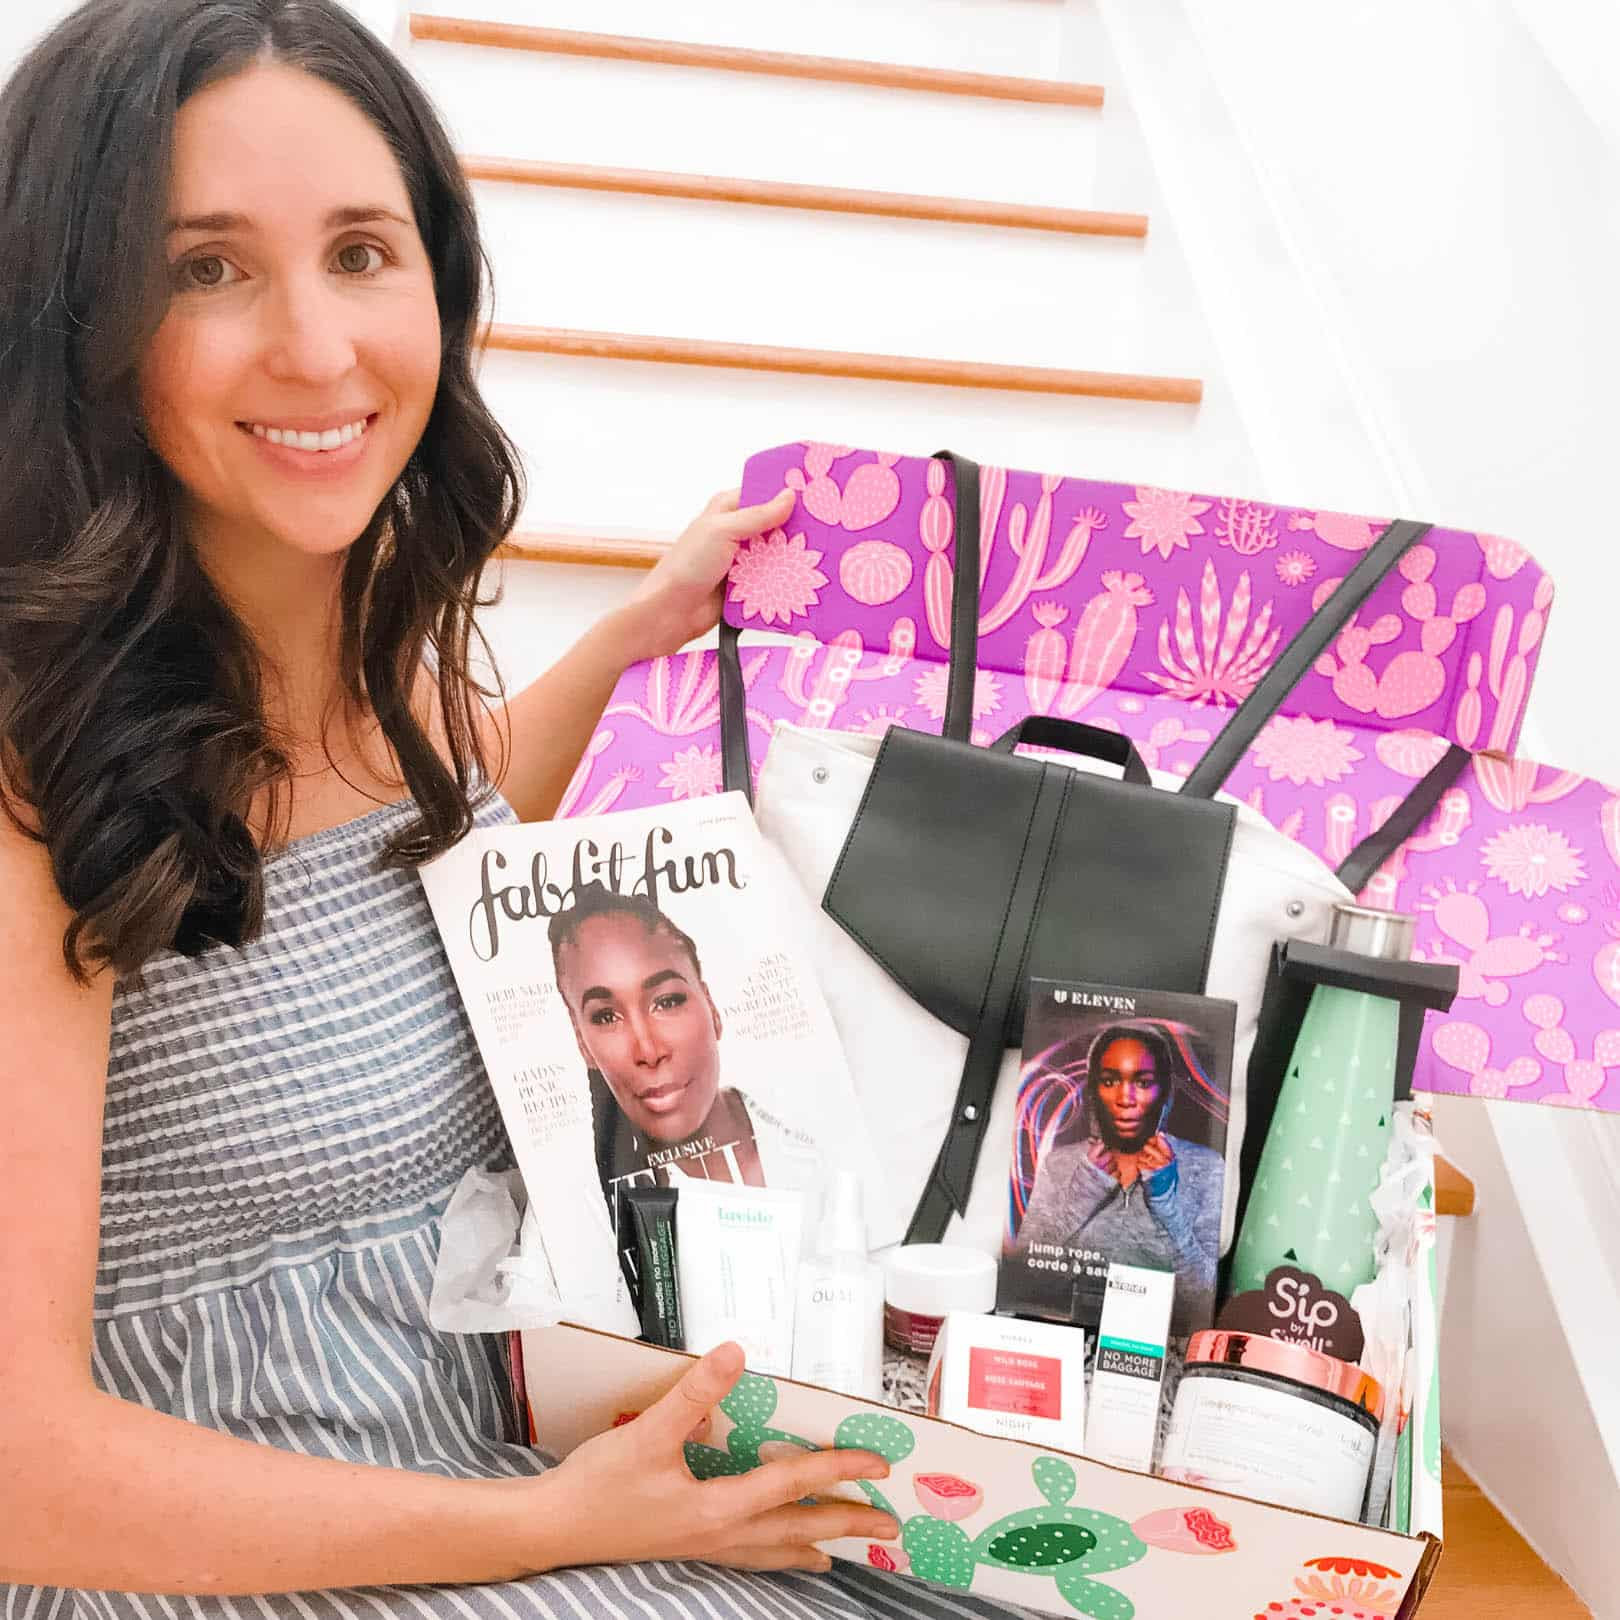 Instagram Made Me Do It: FabFitFun Spring Box 2019 Review, subscription box gifts delivered, fabfitfun coupon, spoiler of products and unboxing of fabfitfun items for fitness, beauty, fashion, and lifestyle